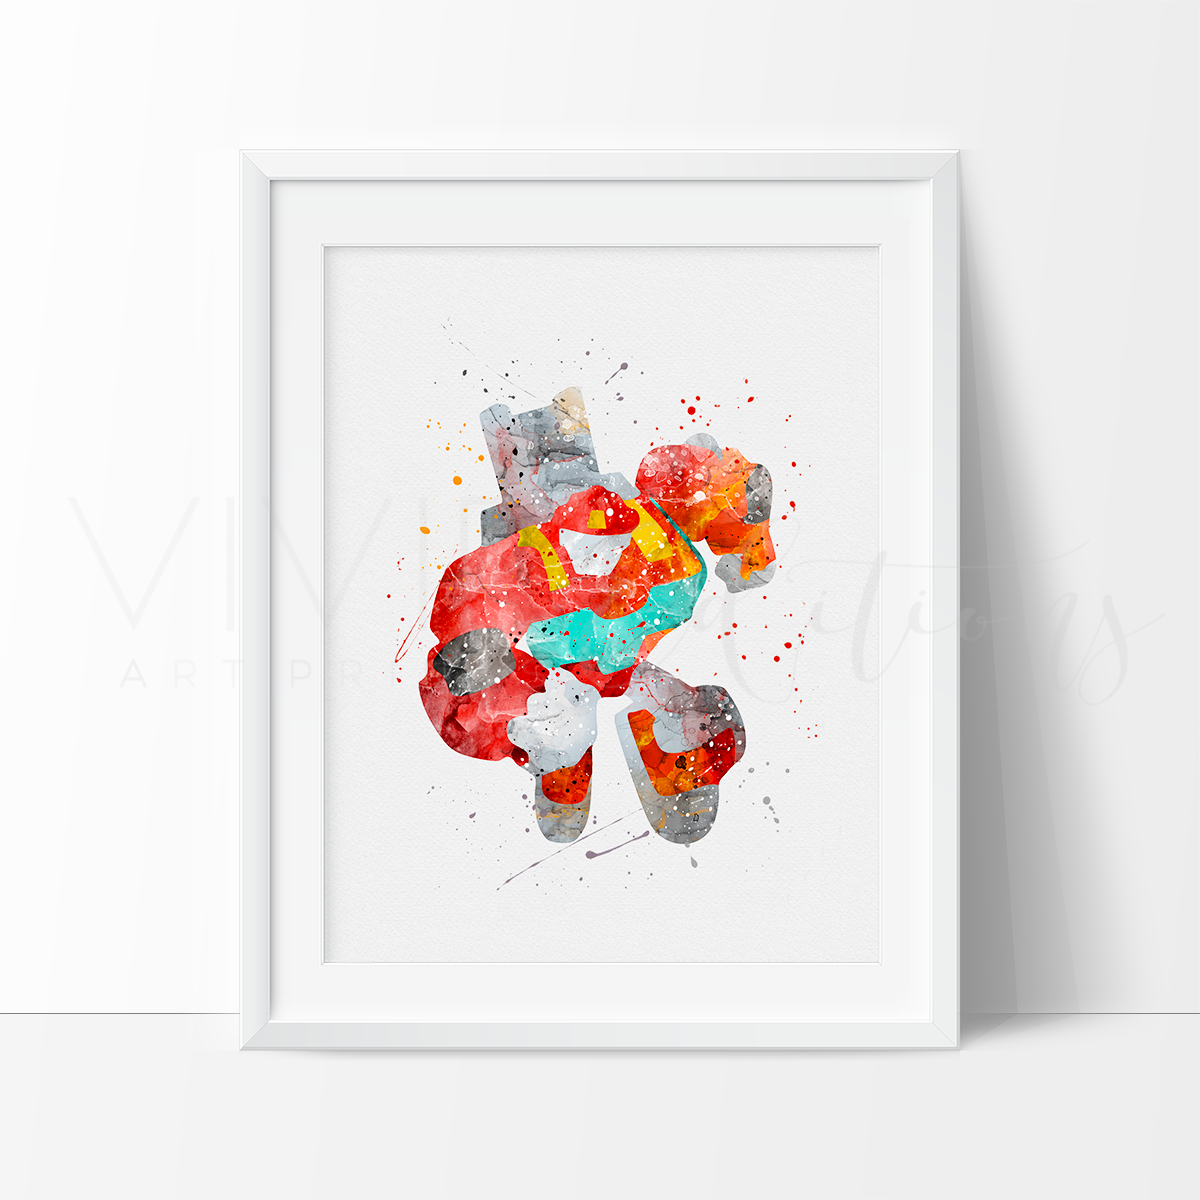 Heatwave, Transformers Watercolor Art Print Art Print - VIVIDEDITIONS